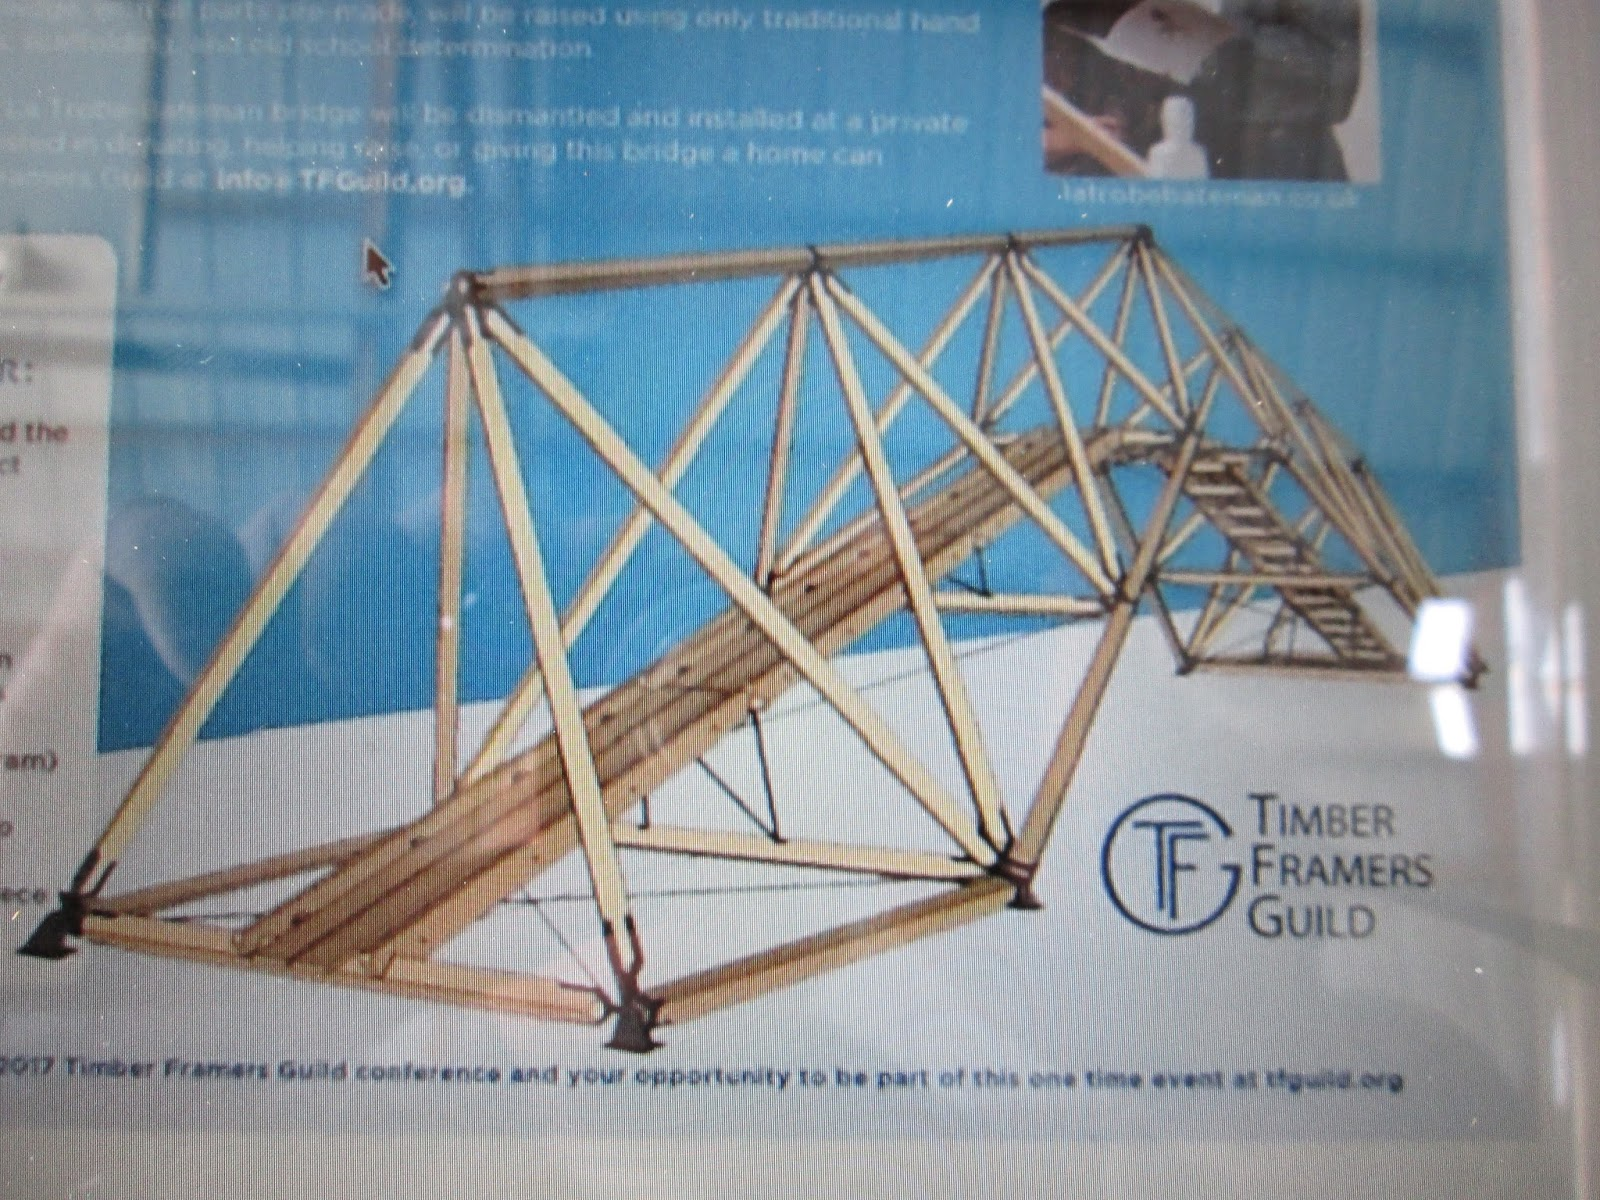 Bridges to the future timber frame bridge project for Timber frame bridge